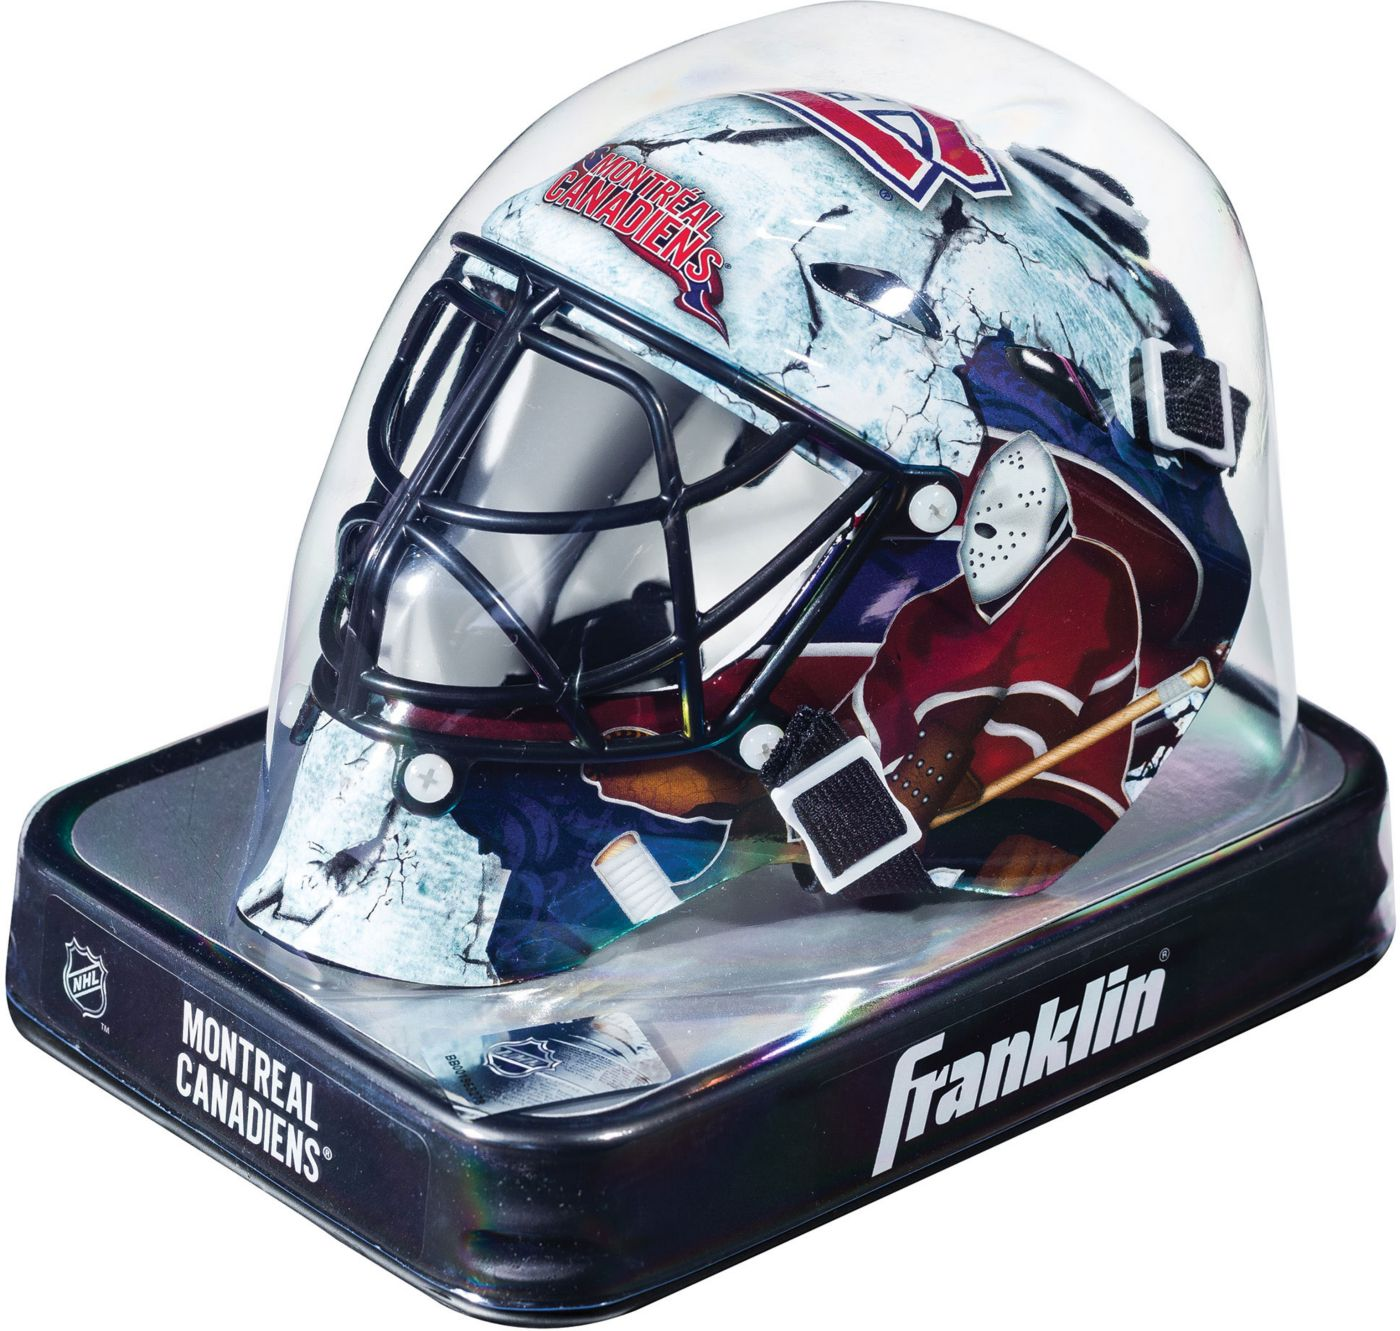 Franklin Montreal Canadiens Mini Goalie Mask